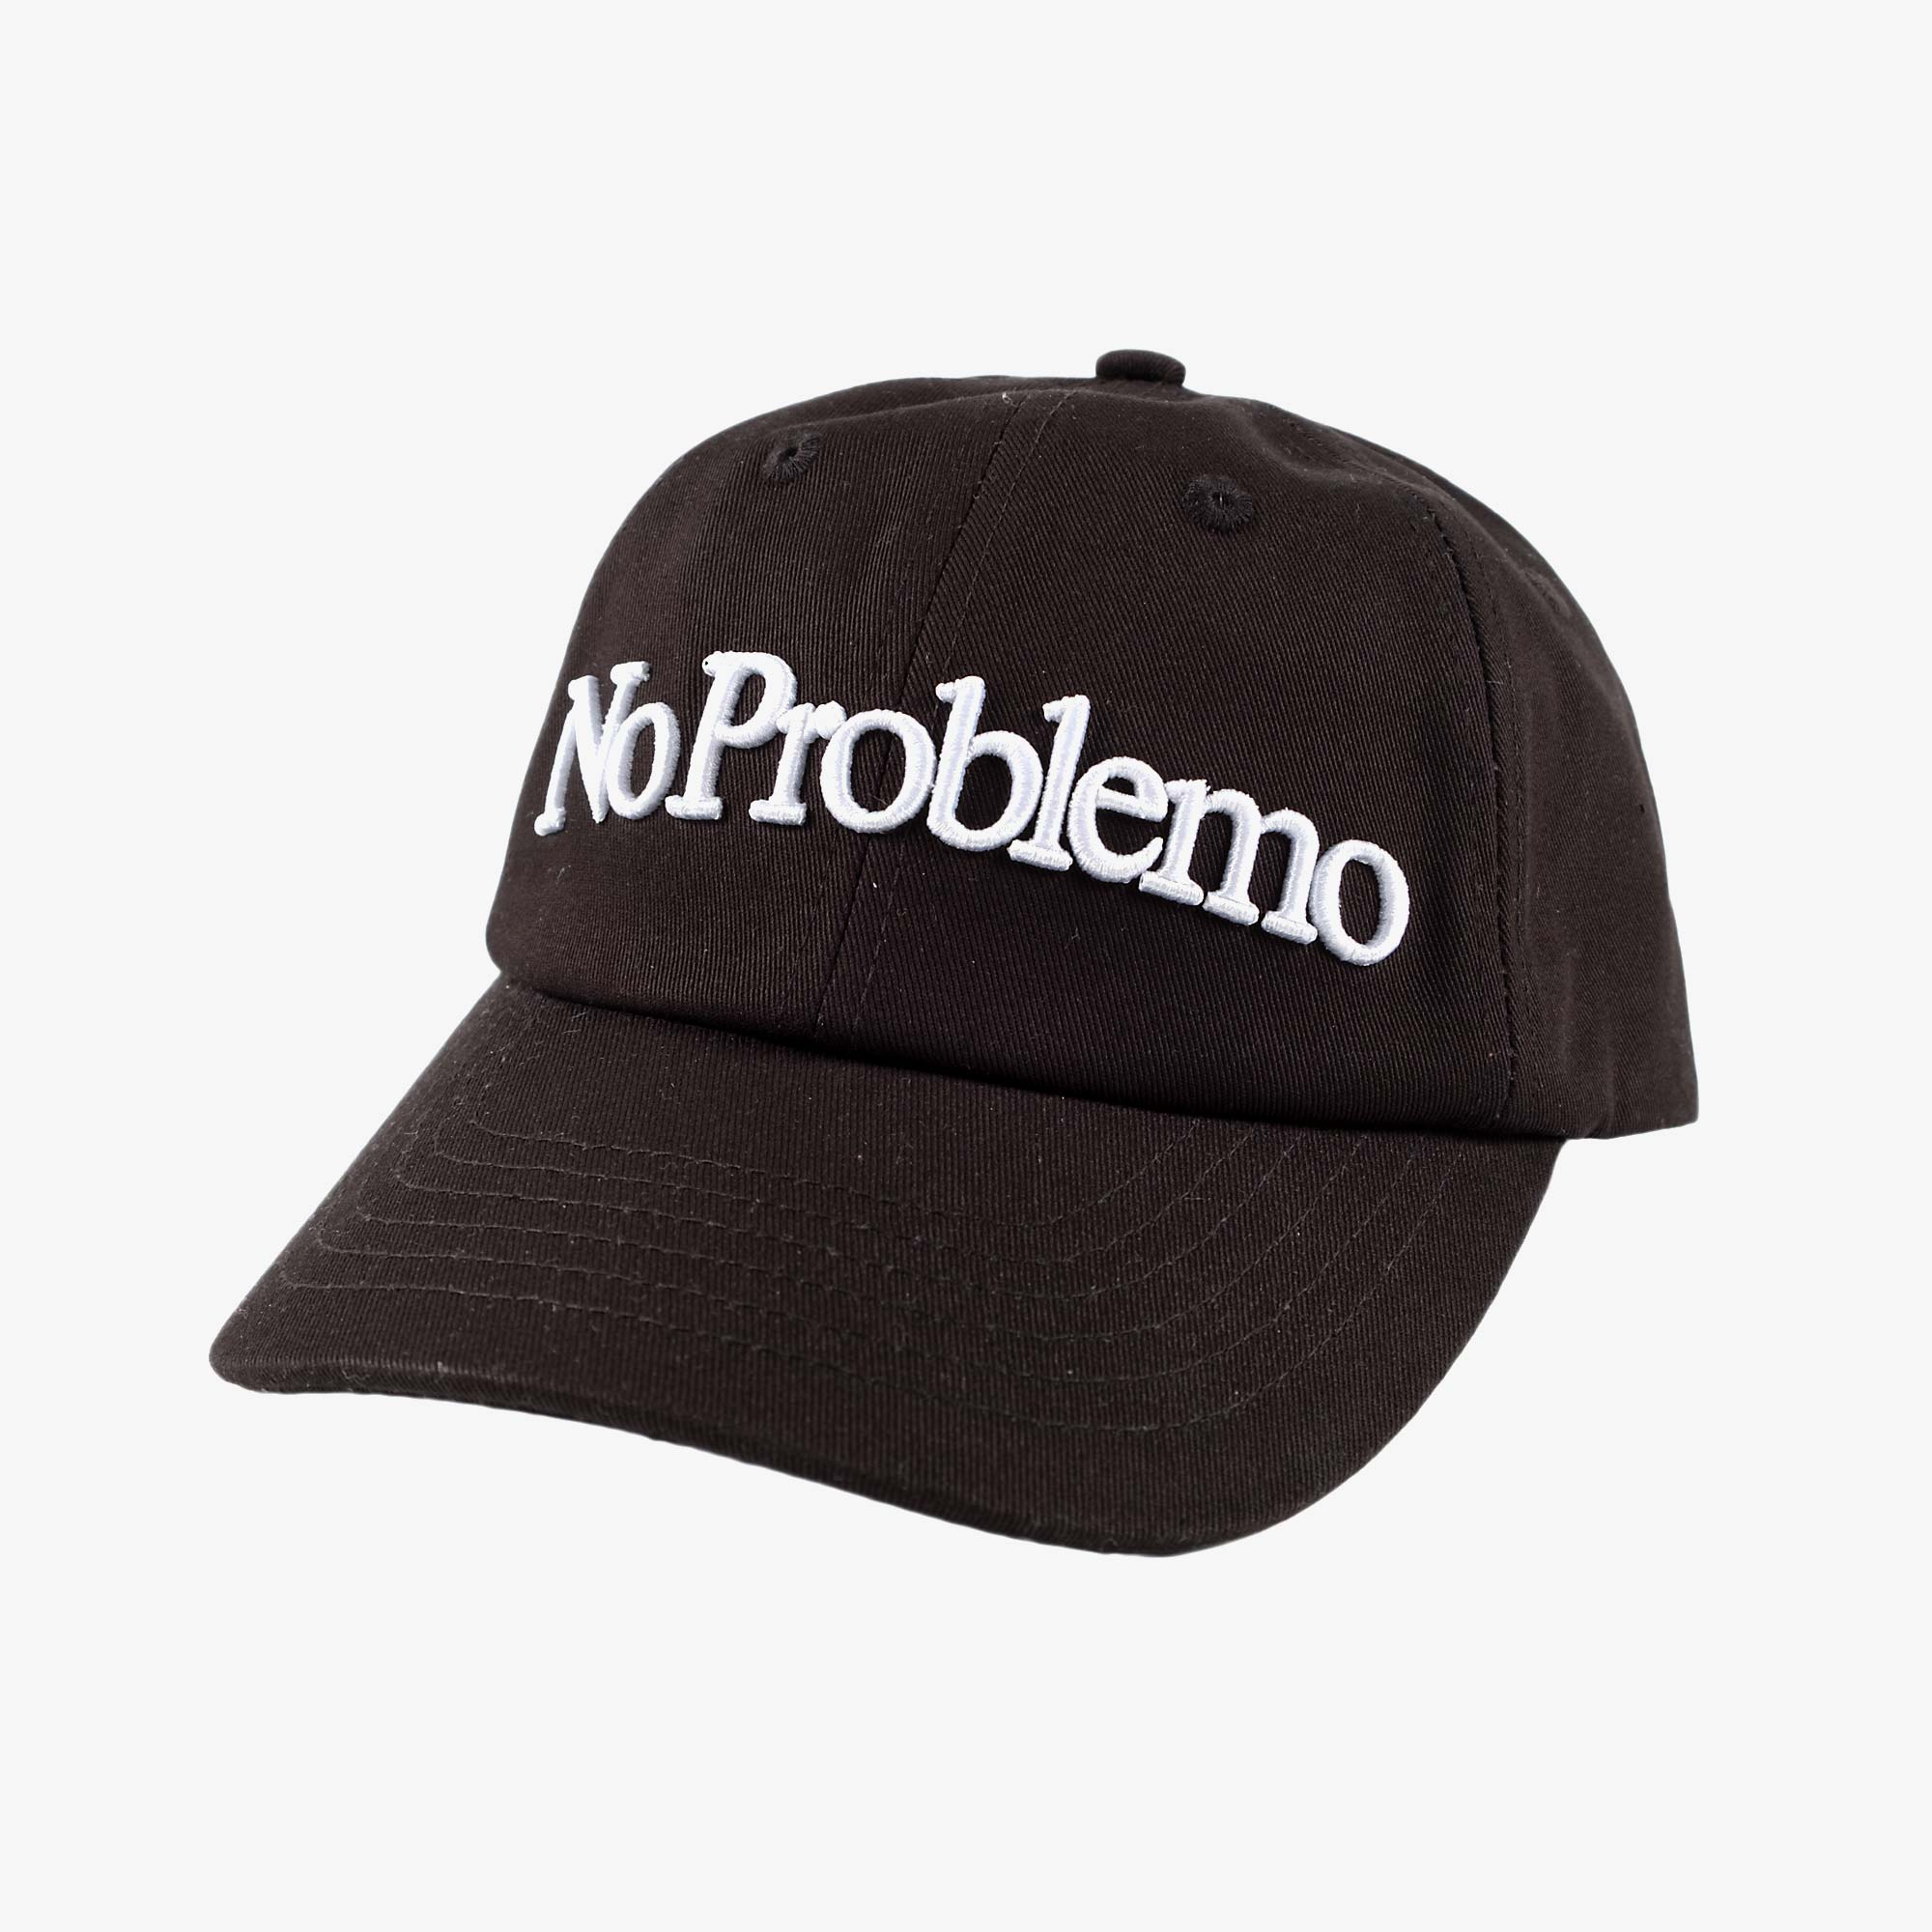 Aries No Problemo Cap - Black 1